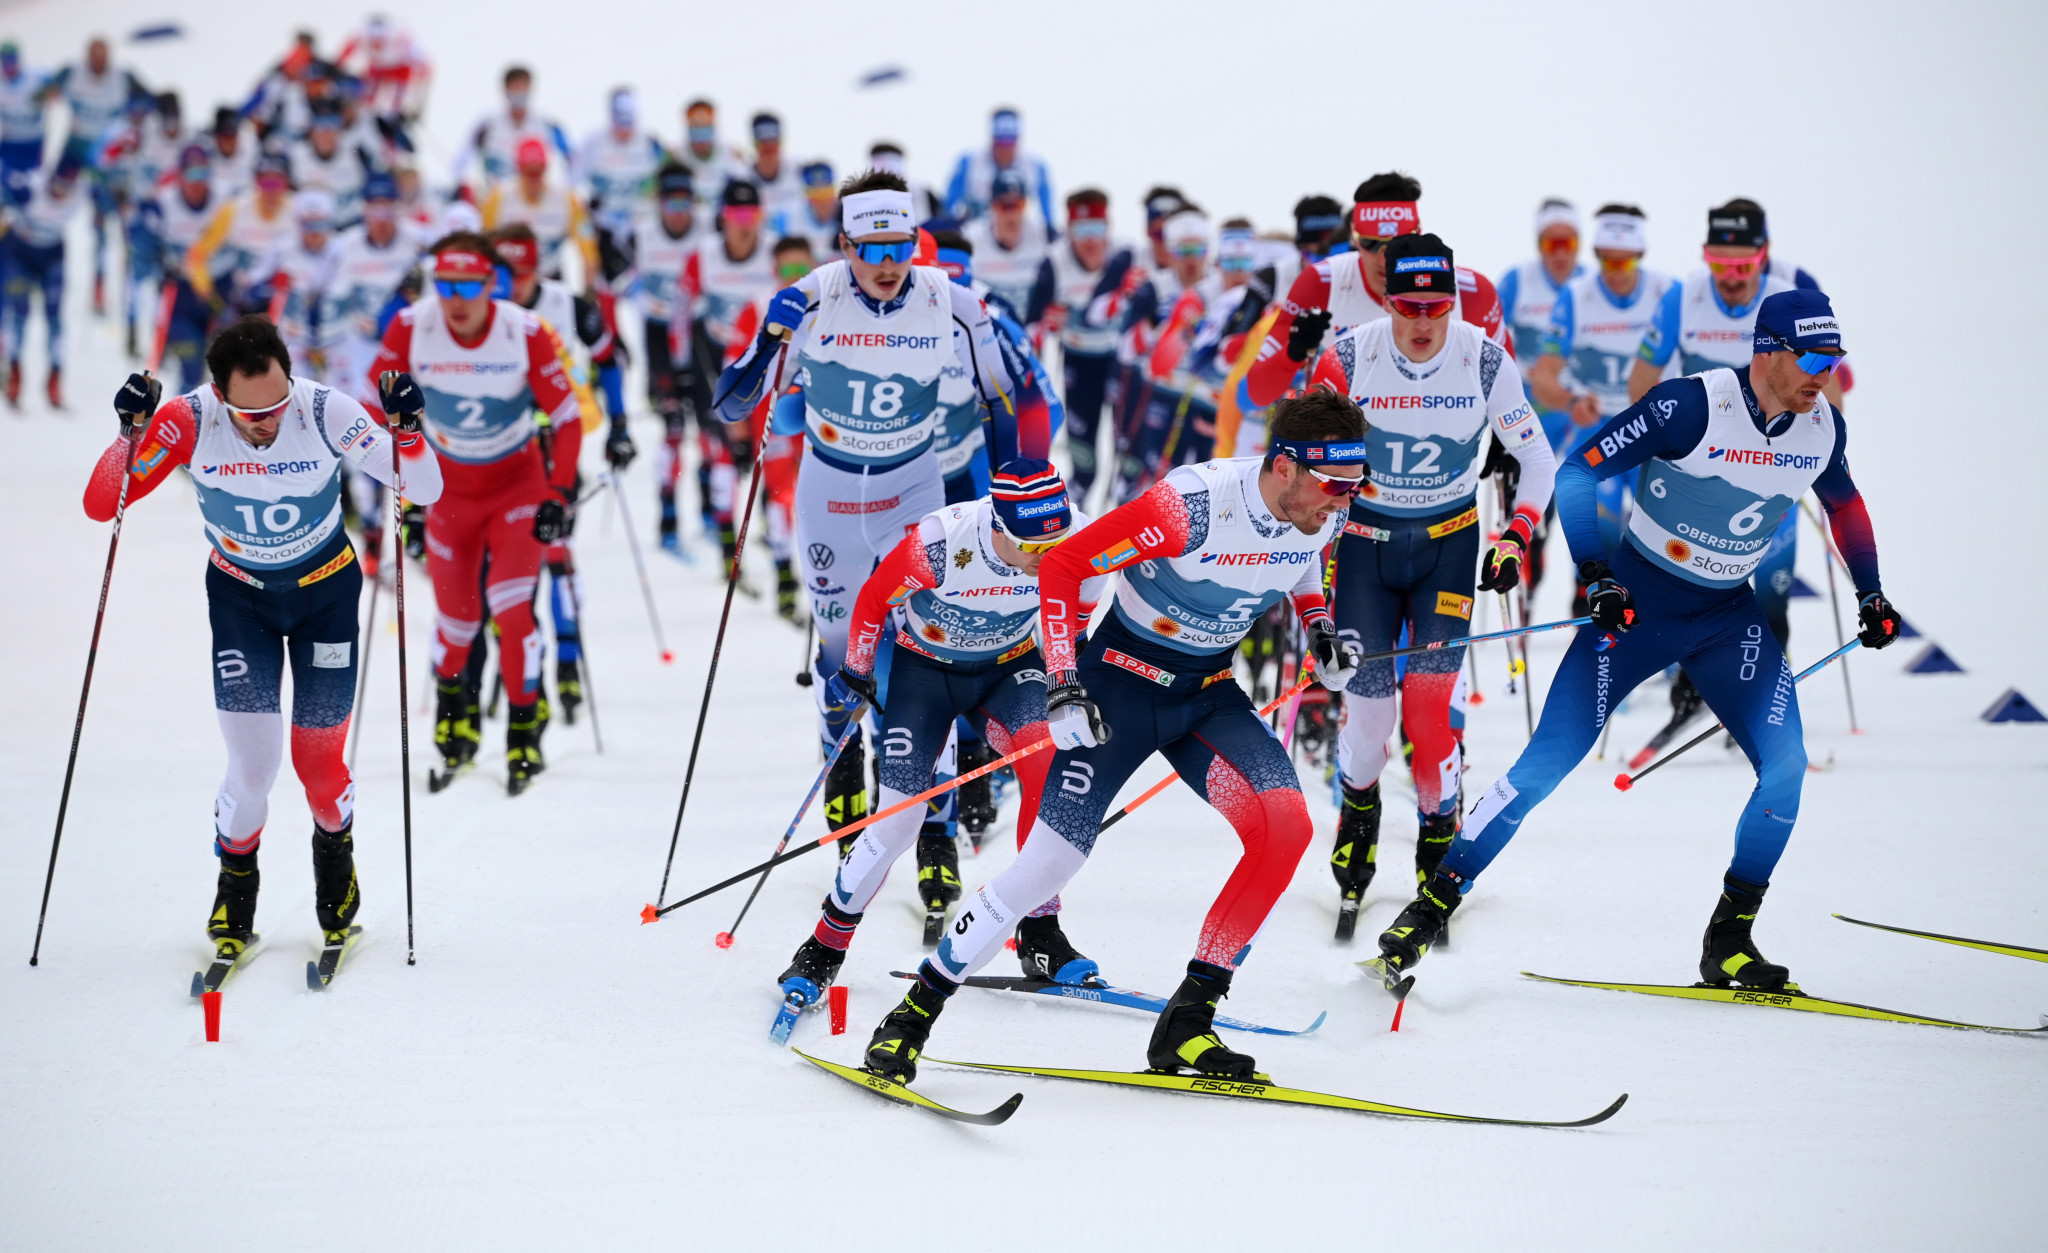 Swiss Ski sign supplier deal with SCATTA from 2022-2023 season